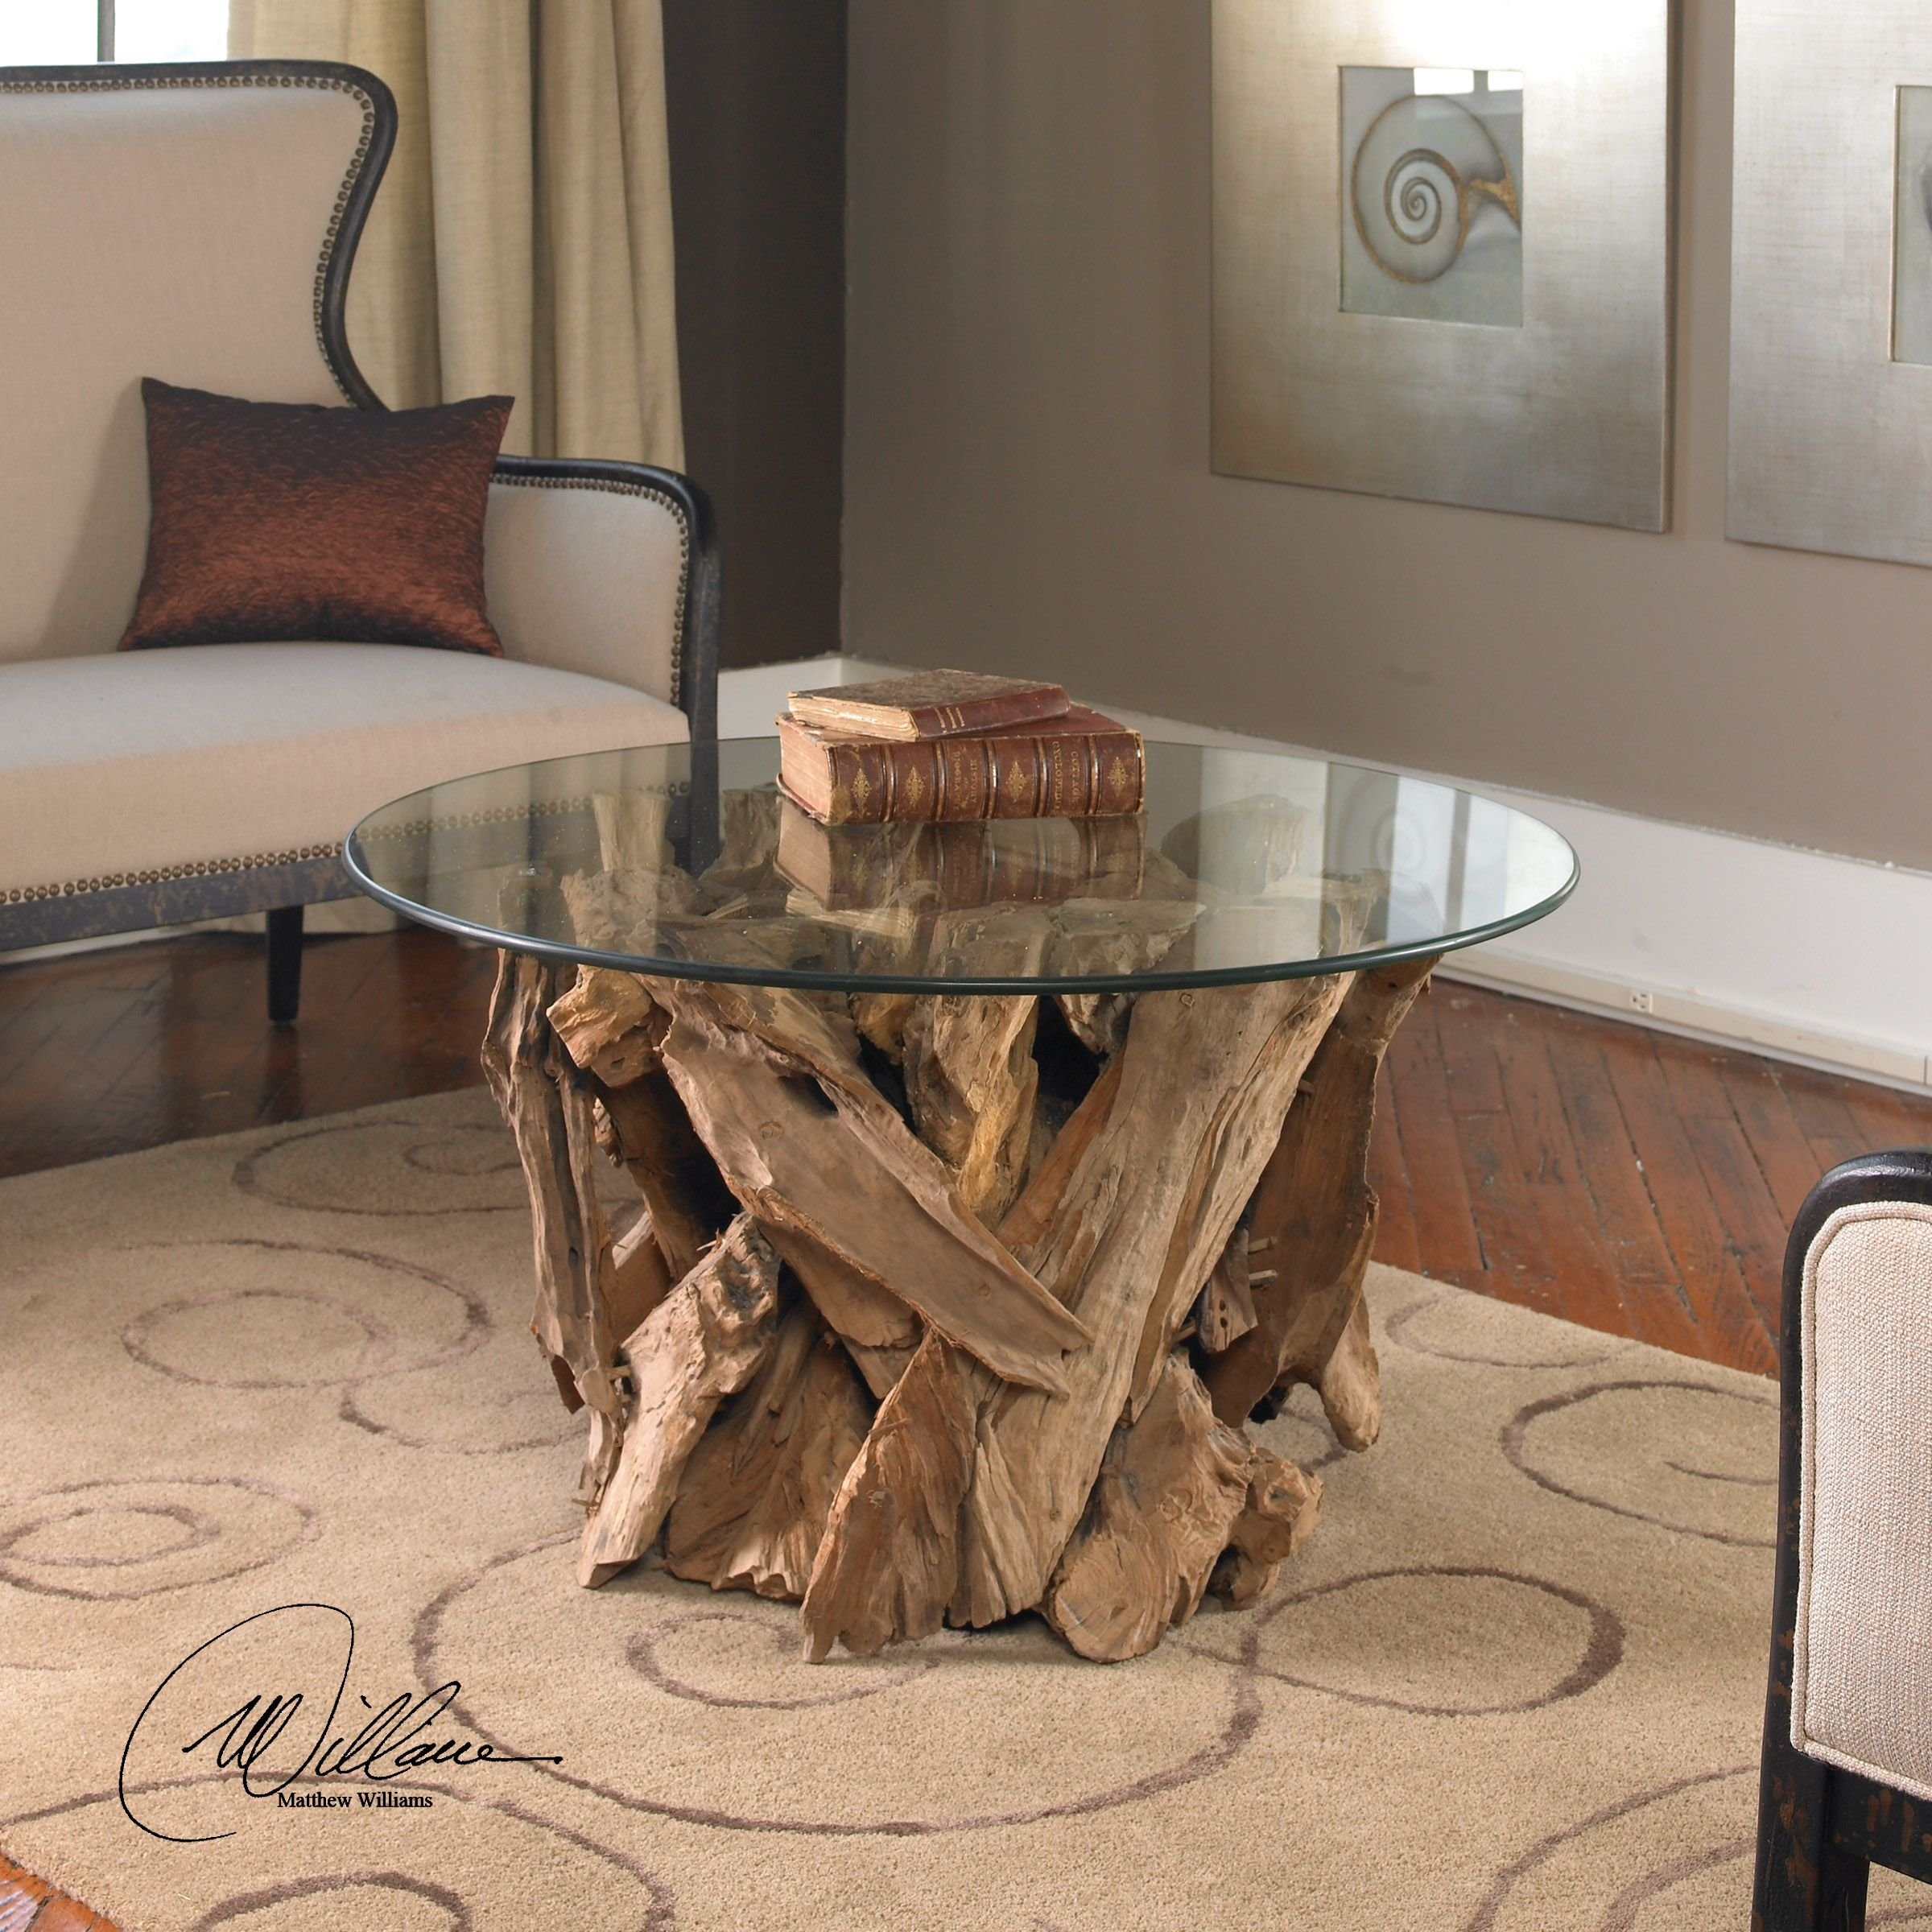 Uttermost Driftwood 36 Round Glass Top Cocktail Table | 25519